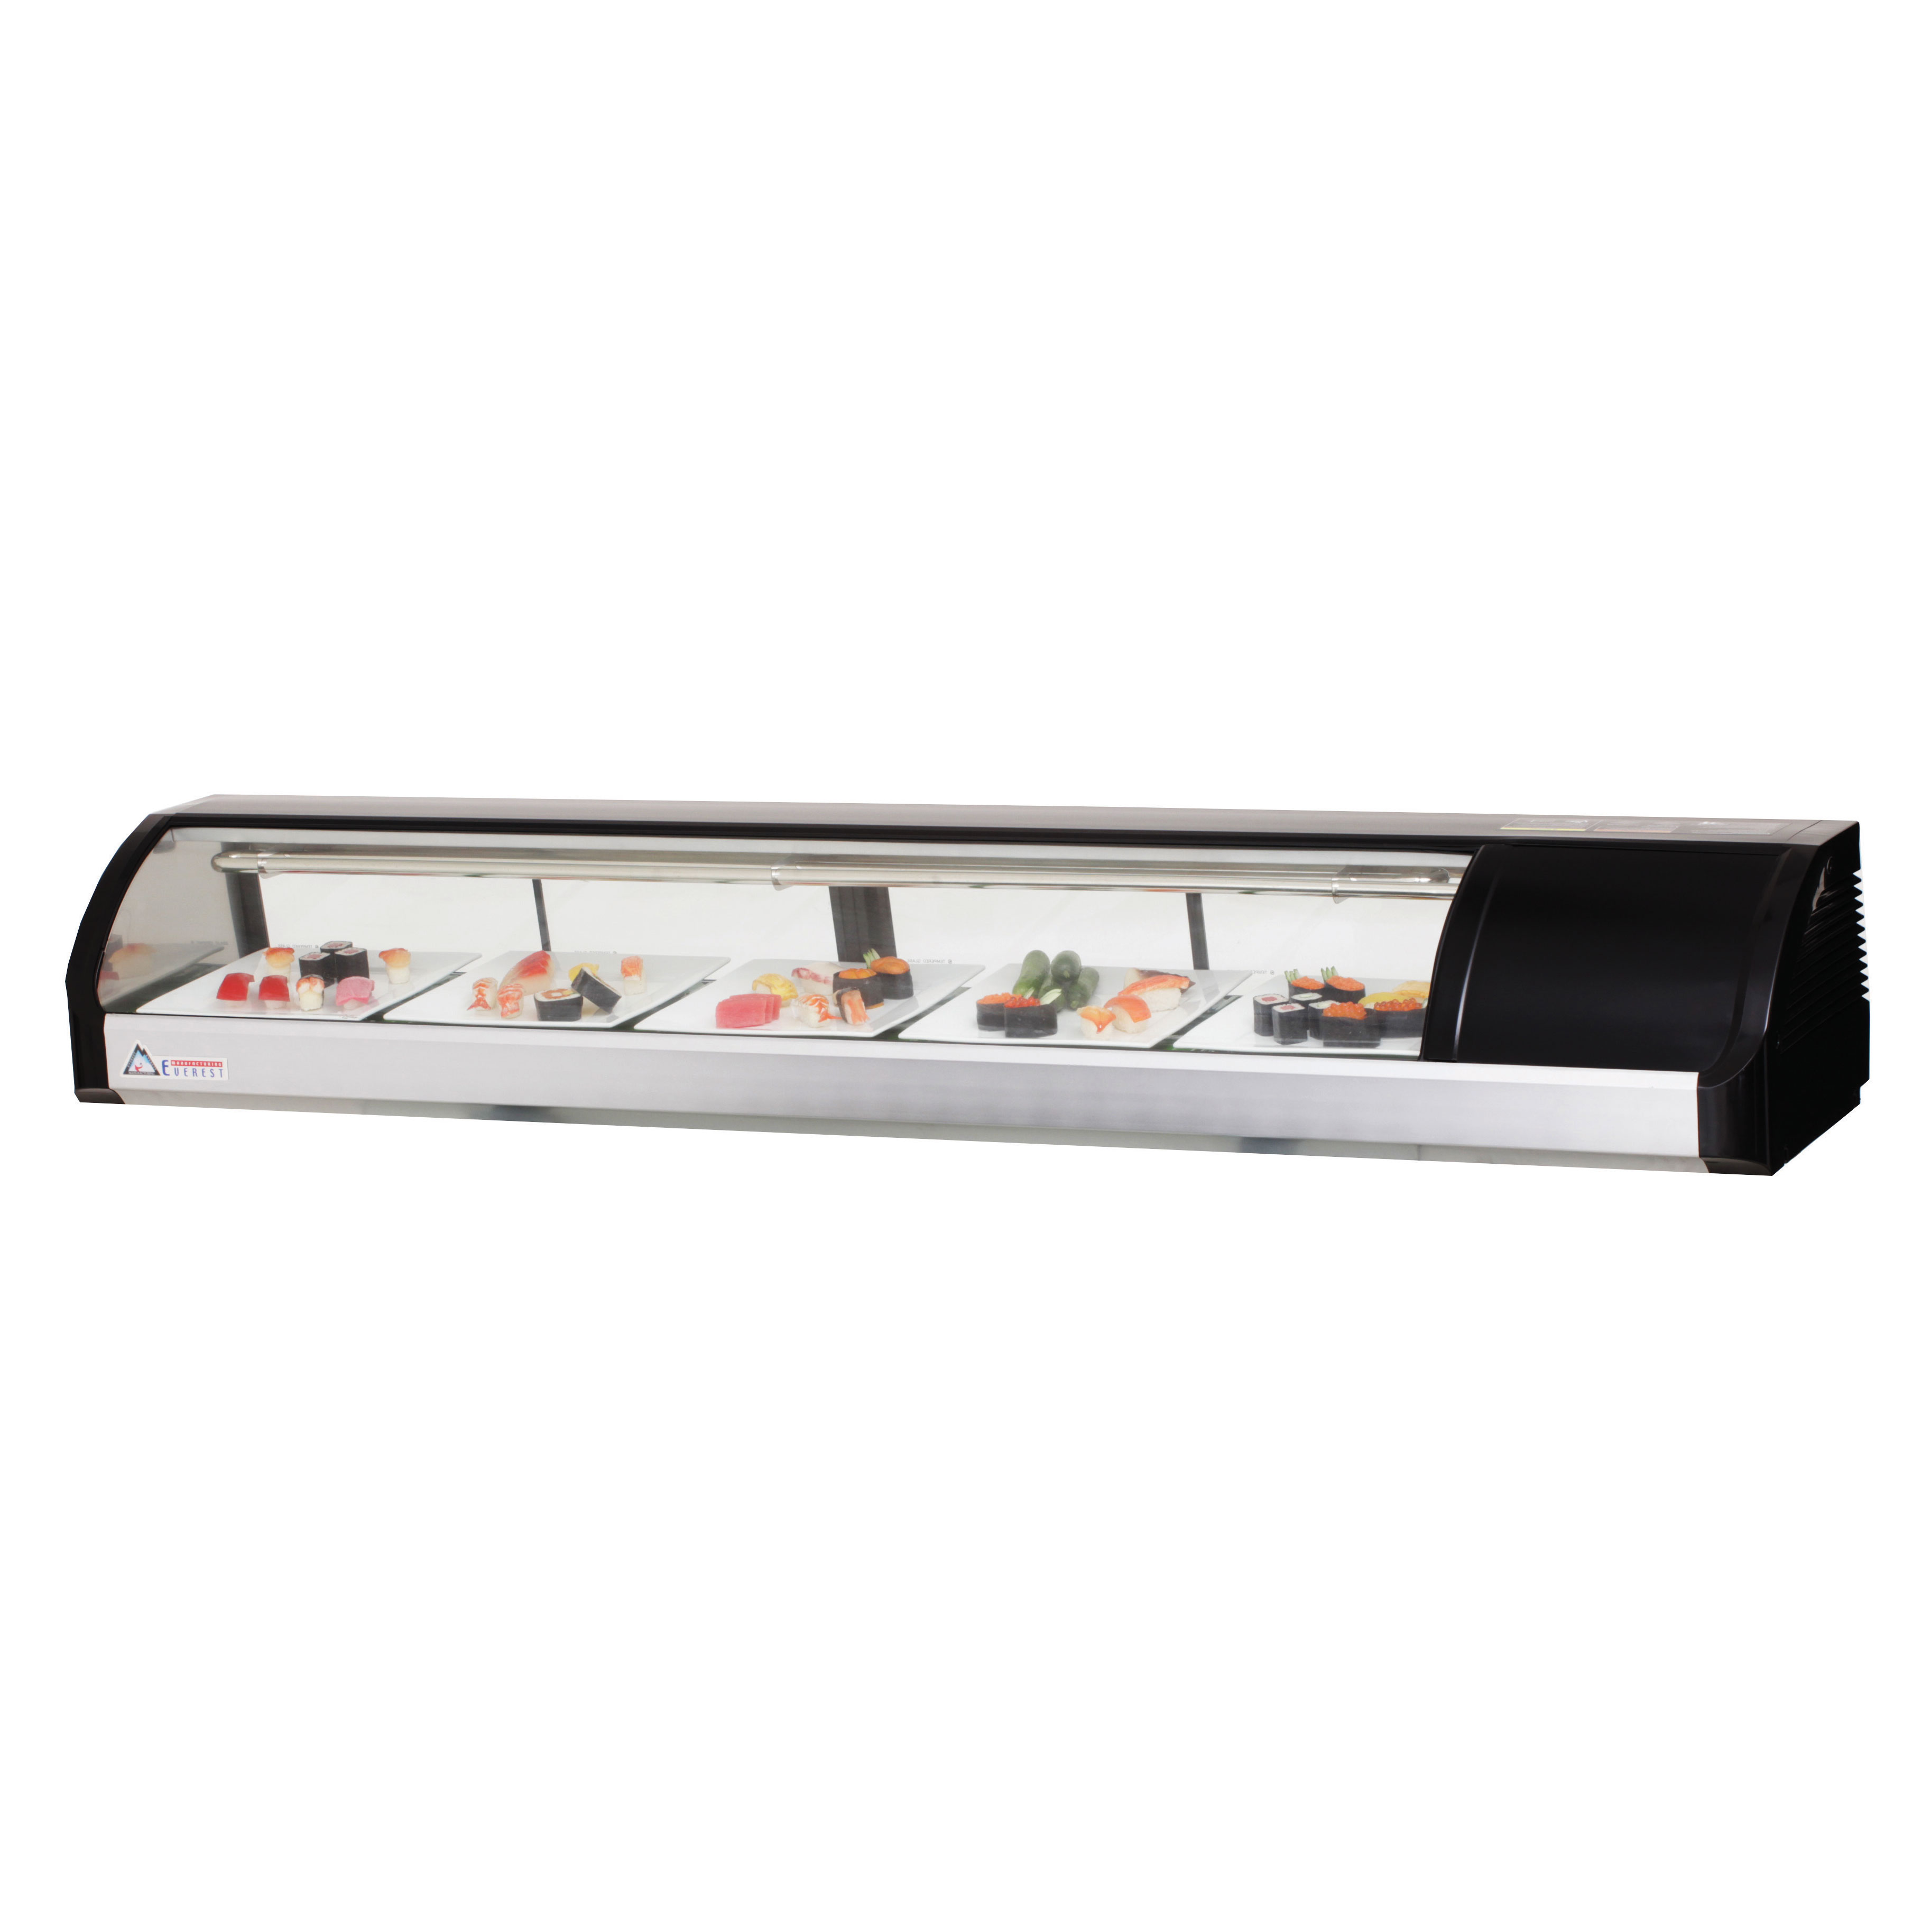 Everest Refrigeration ESC71R display case, refrigerated sushi